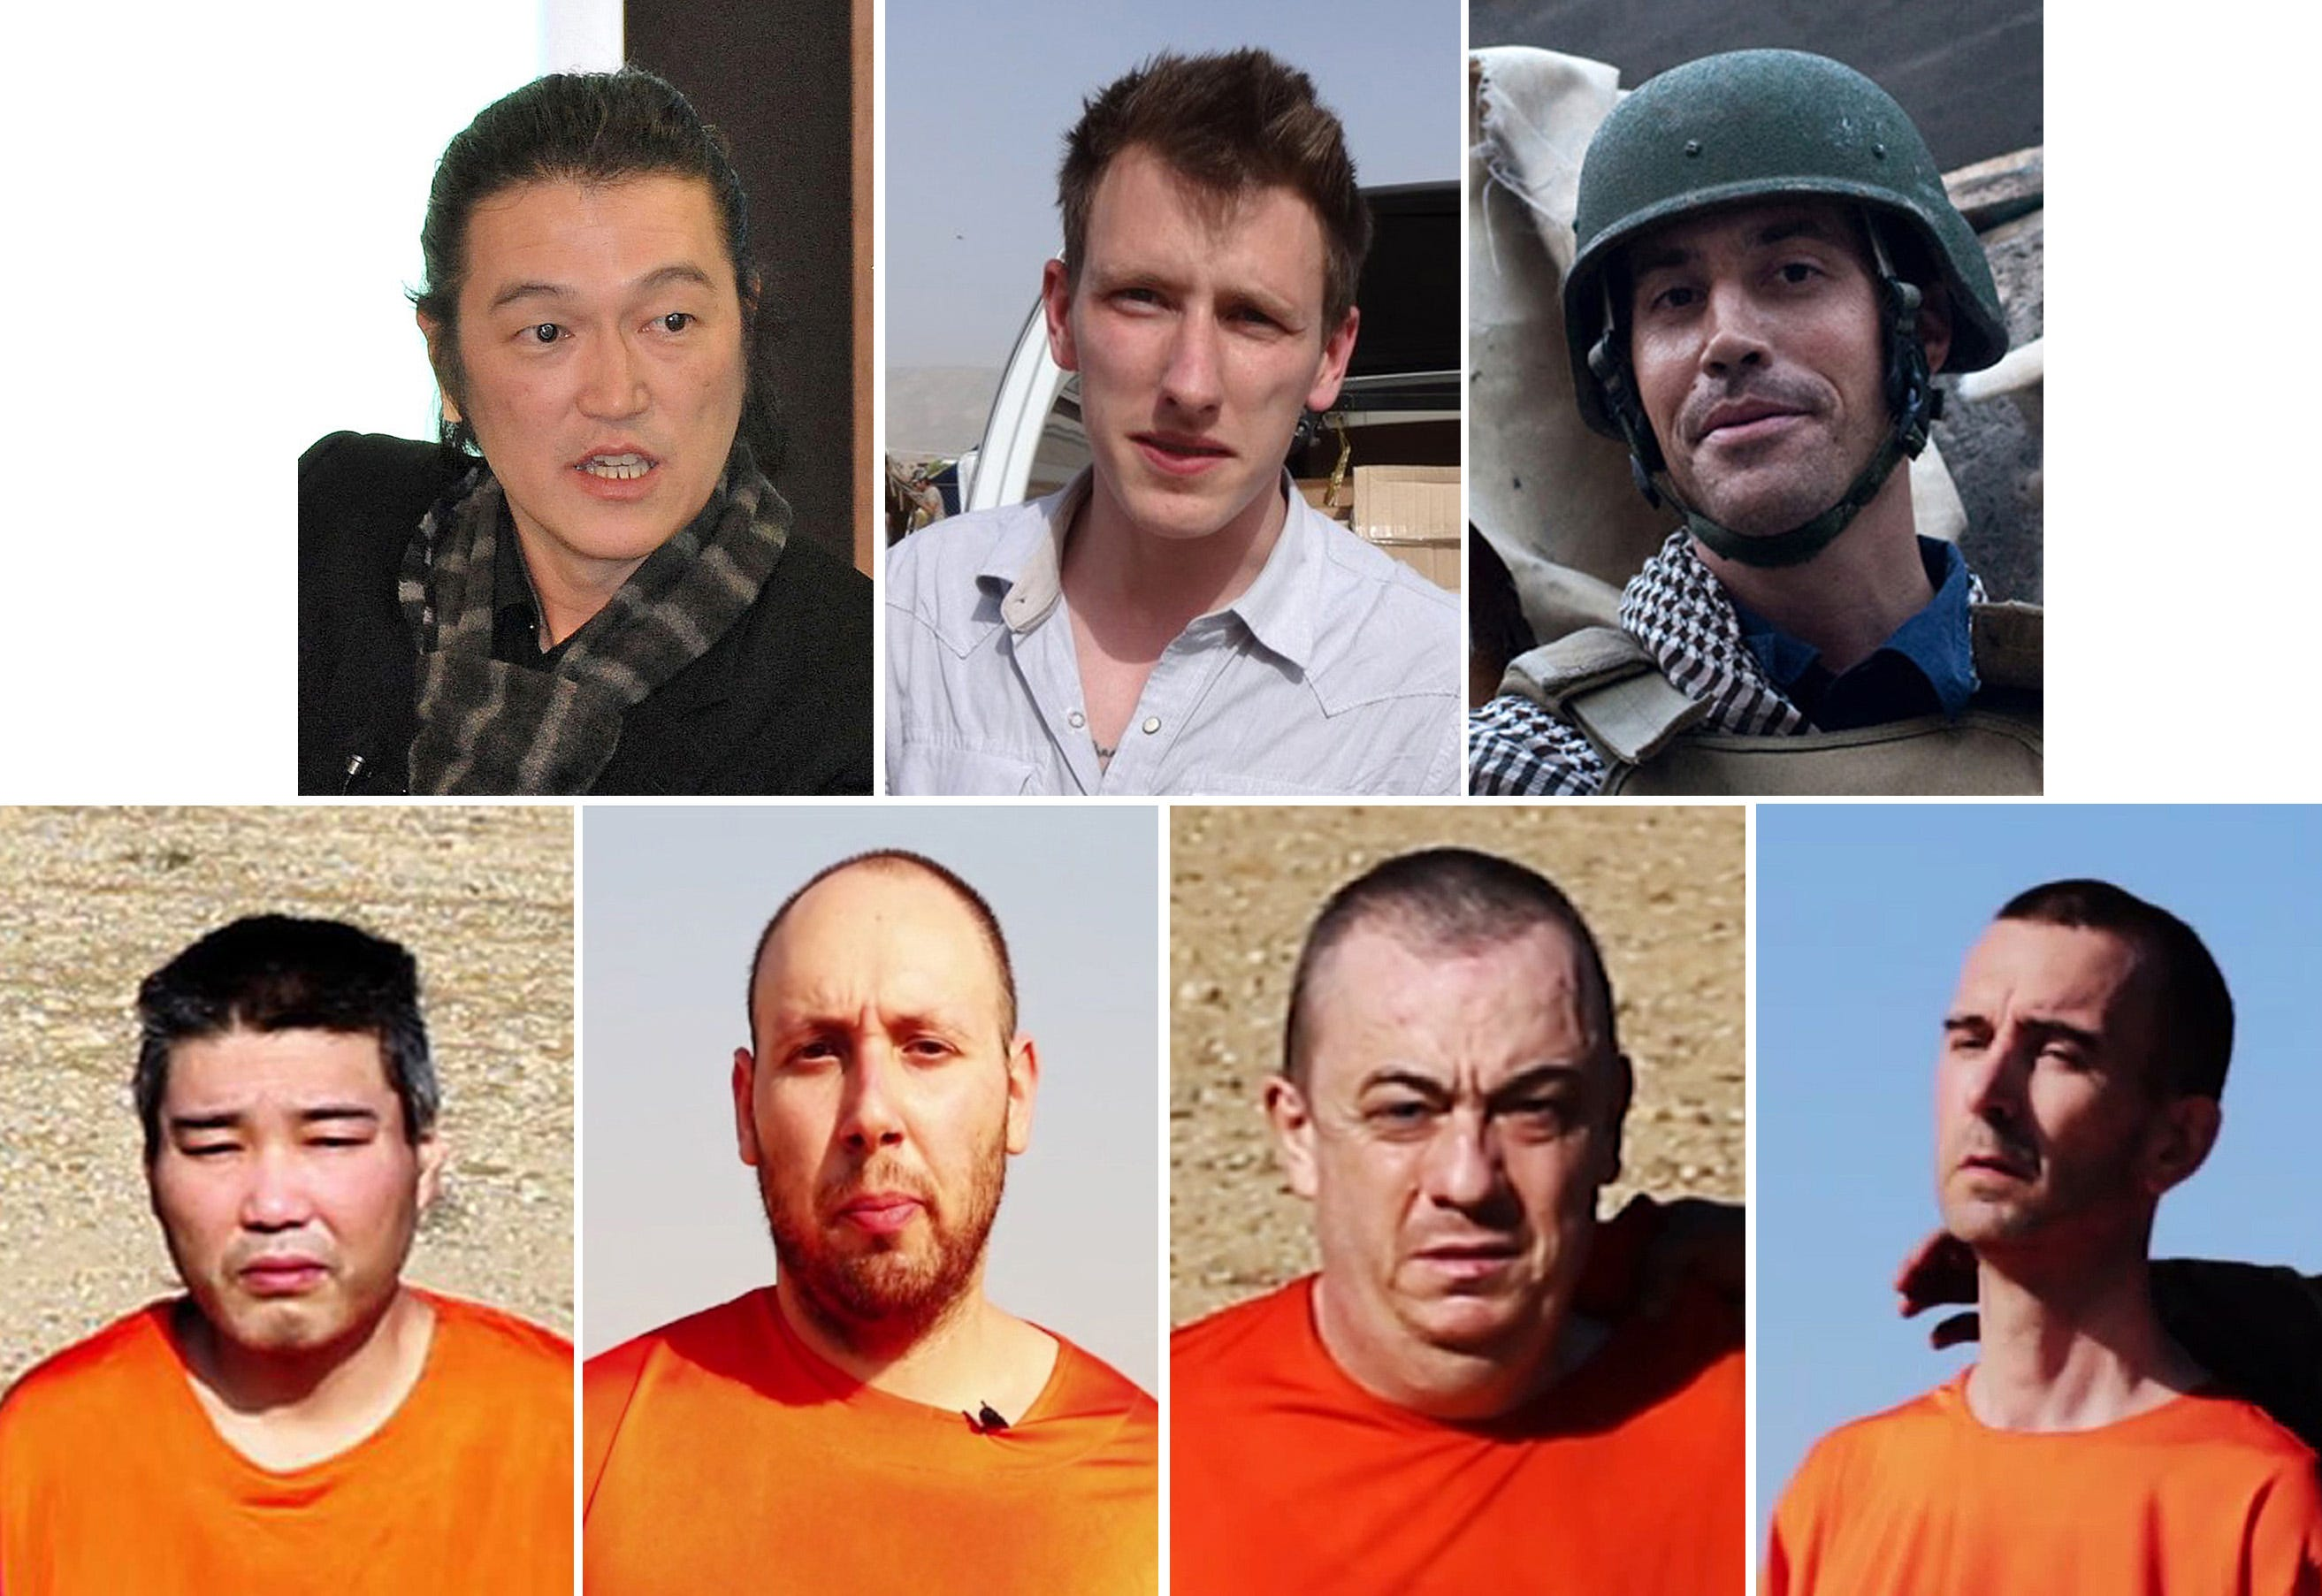 British ISIS suspects known as  The Beatles  charged in deaths of 2 American journalists, 2 aid workers